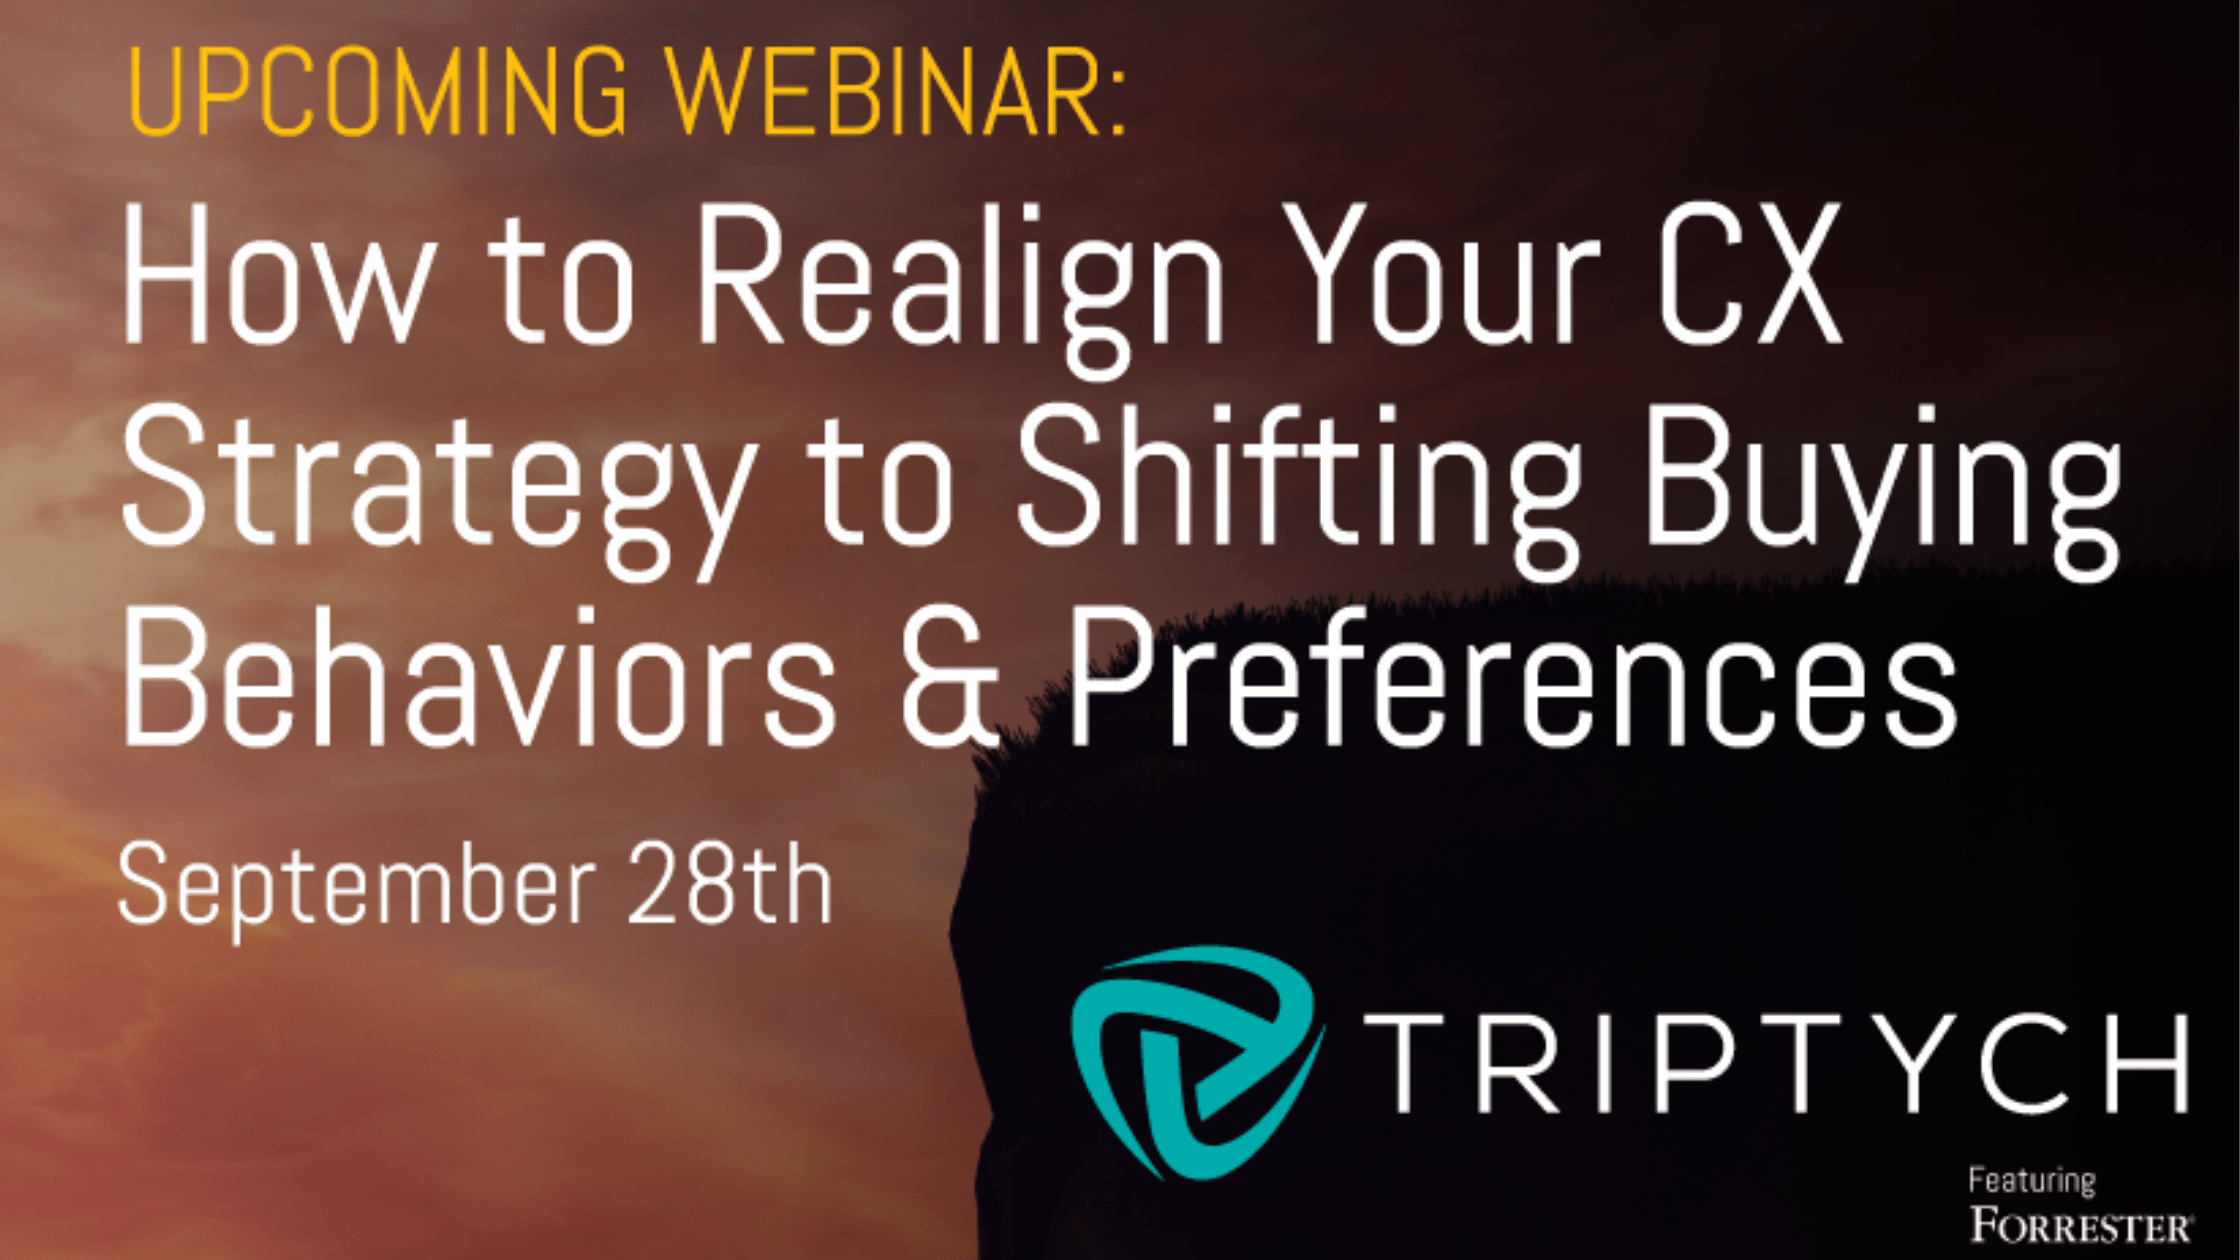 LIVE Triptych Webinar Ft. Data fromForrester's 2021 B2B Buying Study